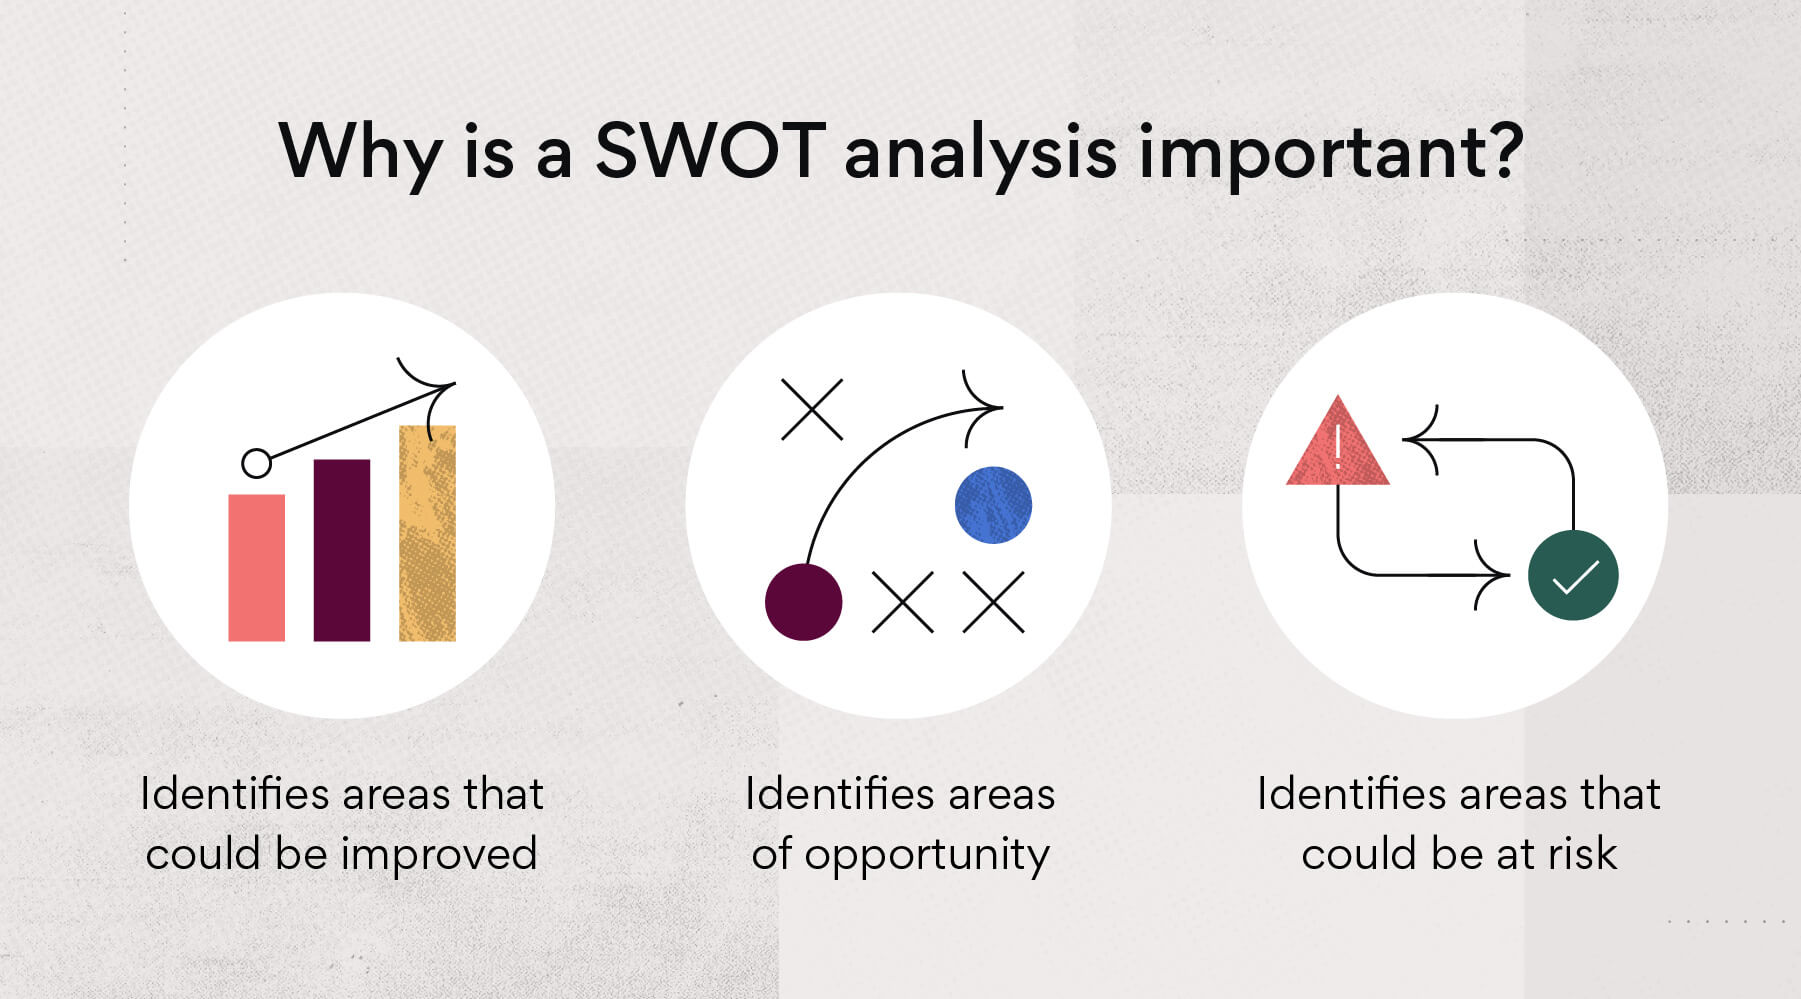 Why is a SWOT analysis important?